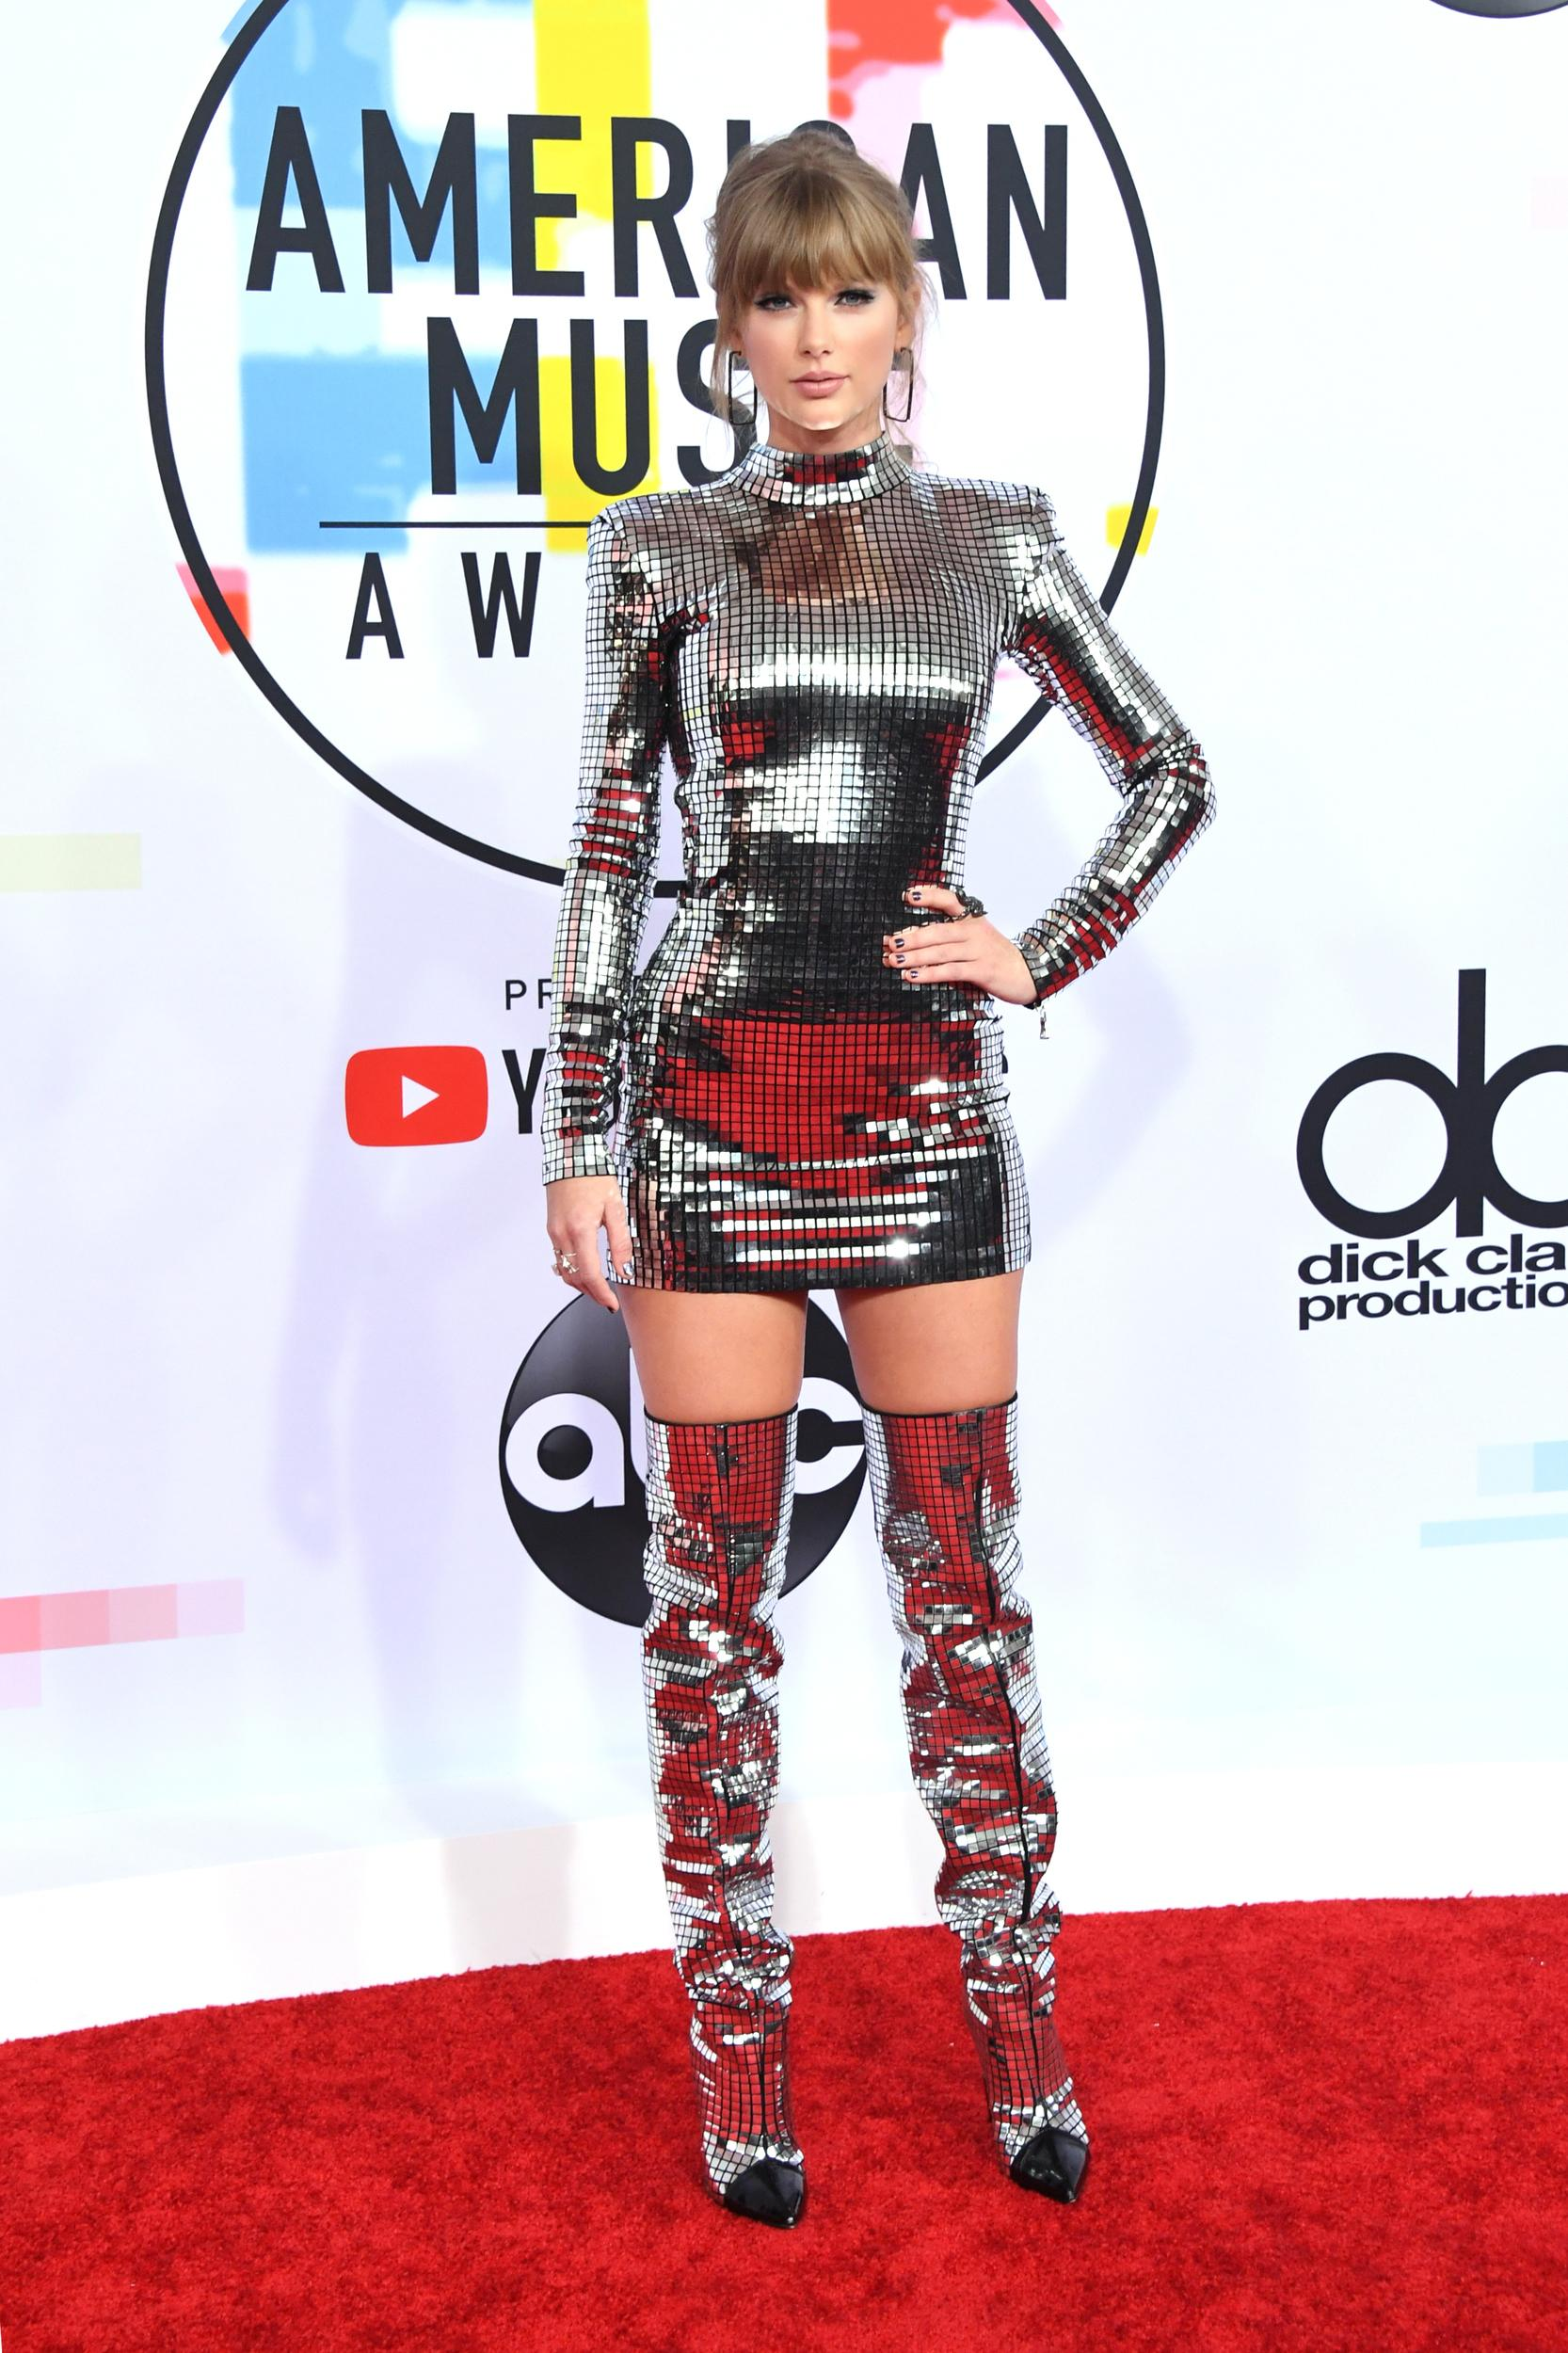 LOS ANGELES, CA - OCTOBER 09: Taylor Swift attends the 2018 American Music Awards at Microsoft Theater on October 9, 2018 in Los Angeles, California. (Photo by Jon Kopaloff/FilmMagic)